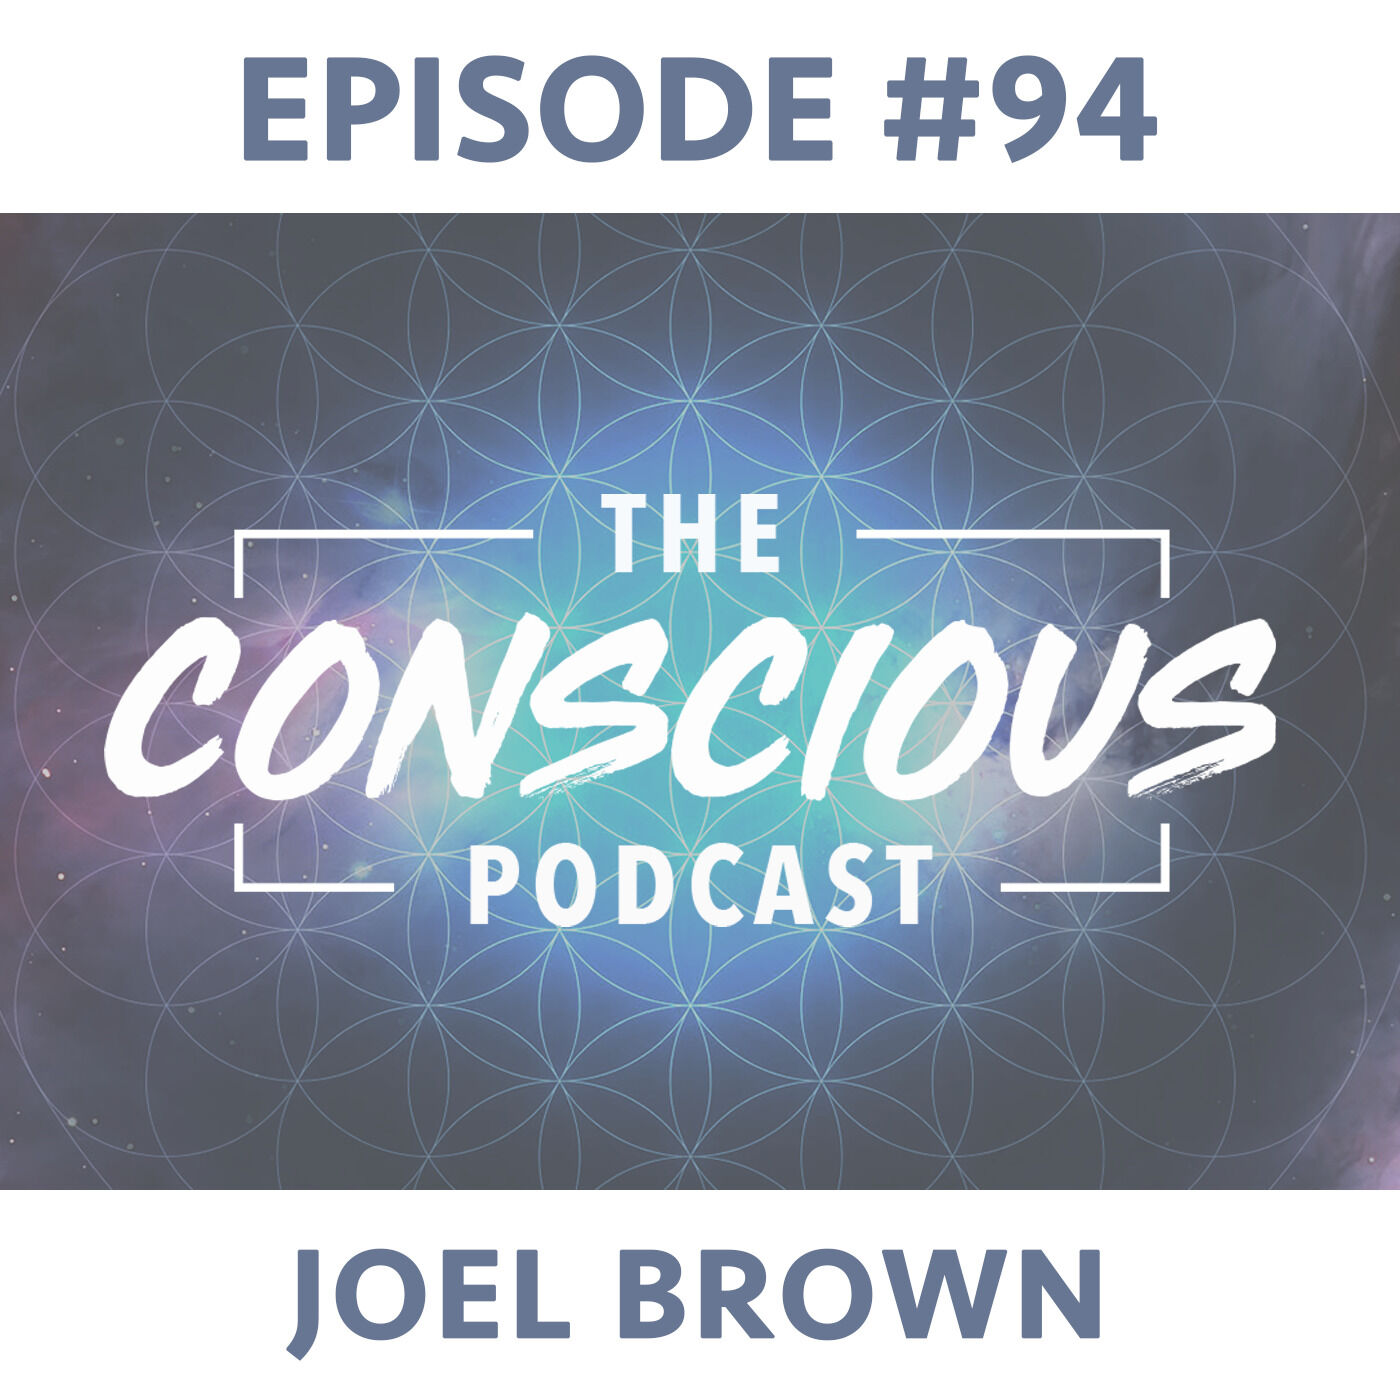 #94 - Joel Brown on the Certainty, Attitude & Mindset of Success.